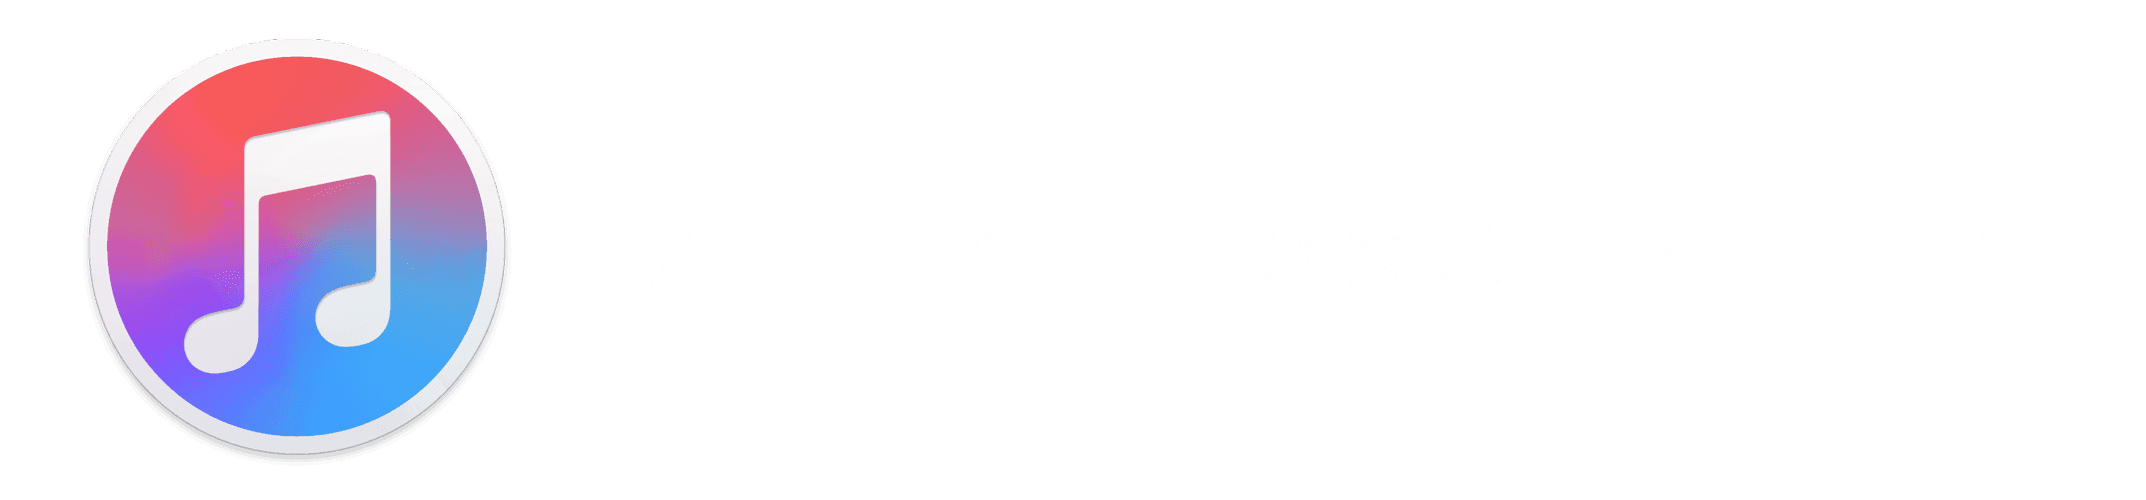 Free Apple Music Account Subscription